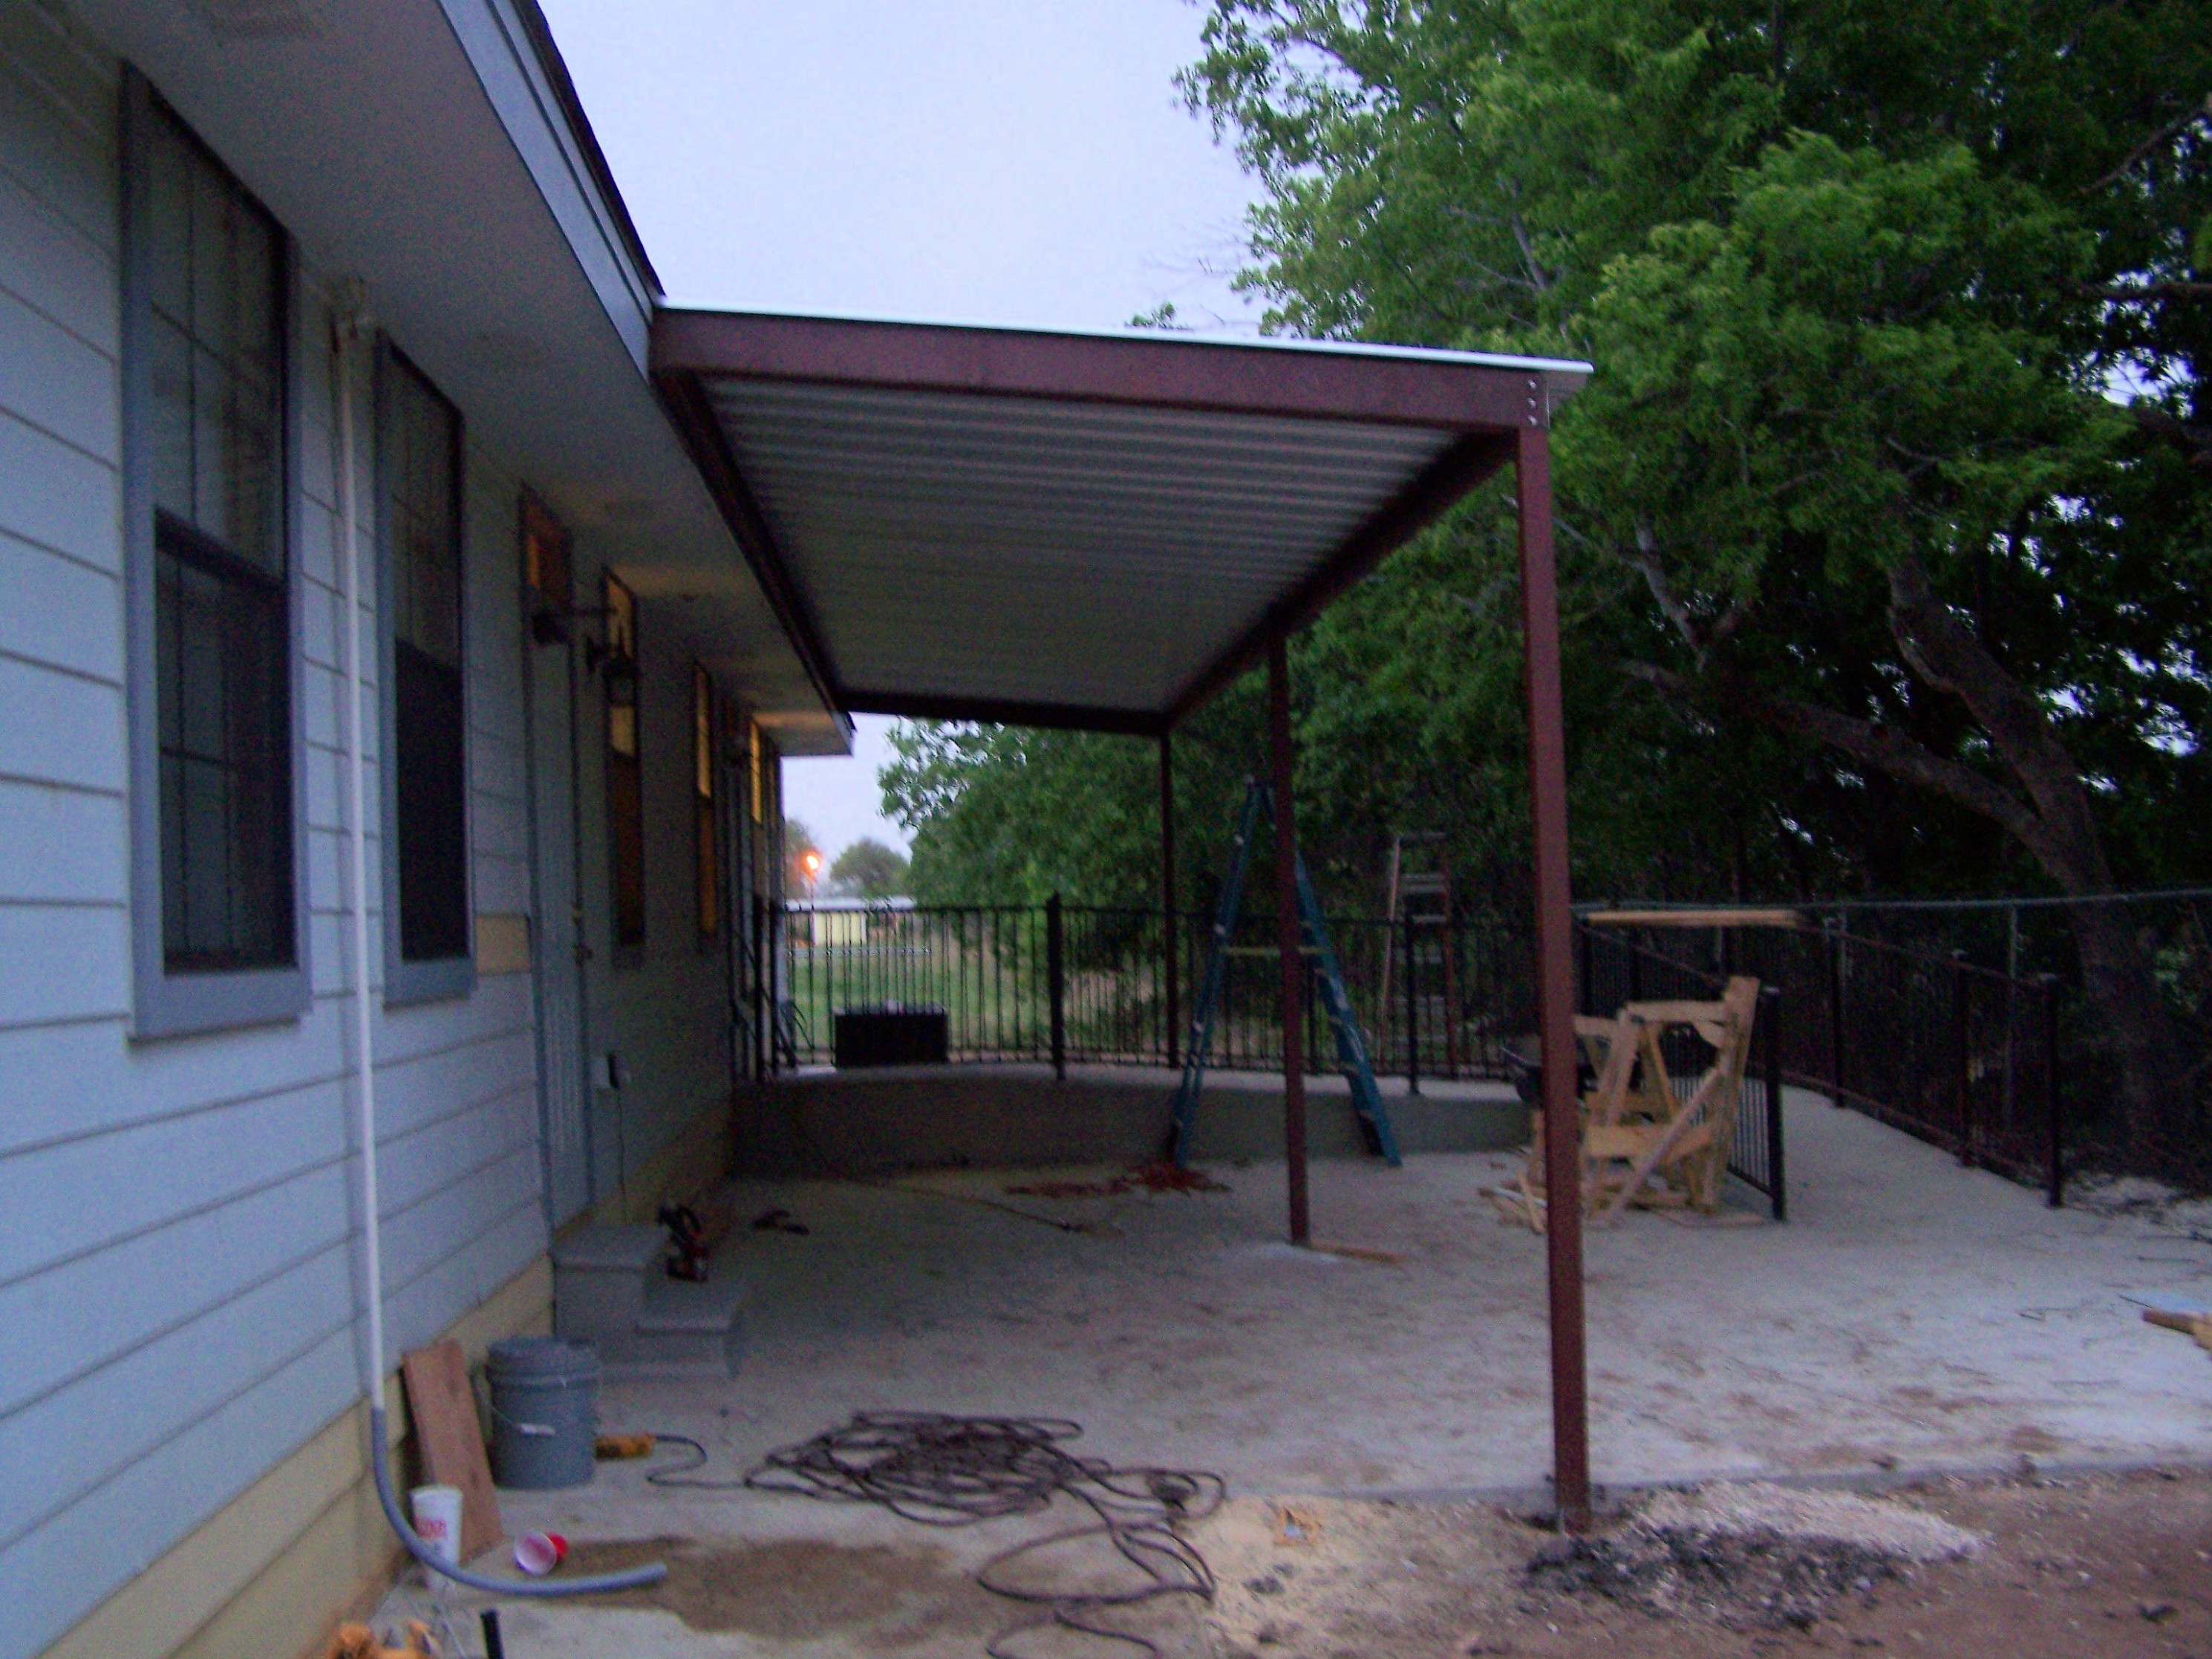 Commercial Steel Awning New Braunfels Texas Carport Menards Steel Carport.jpg